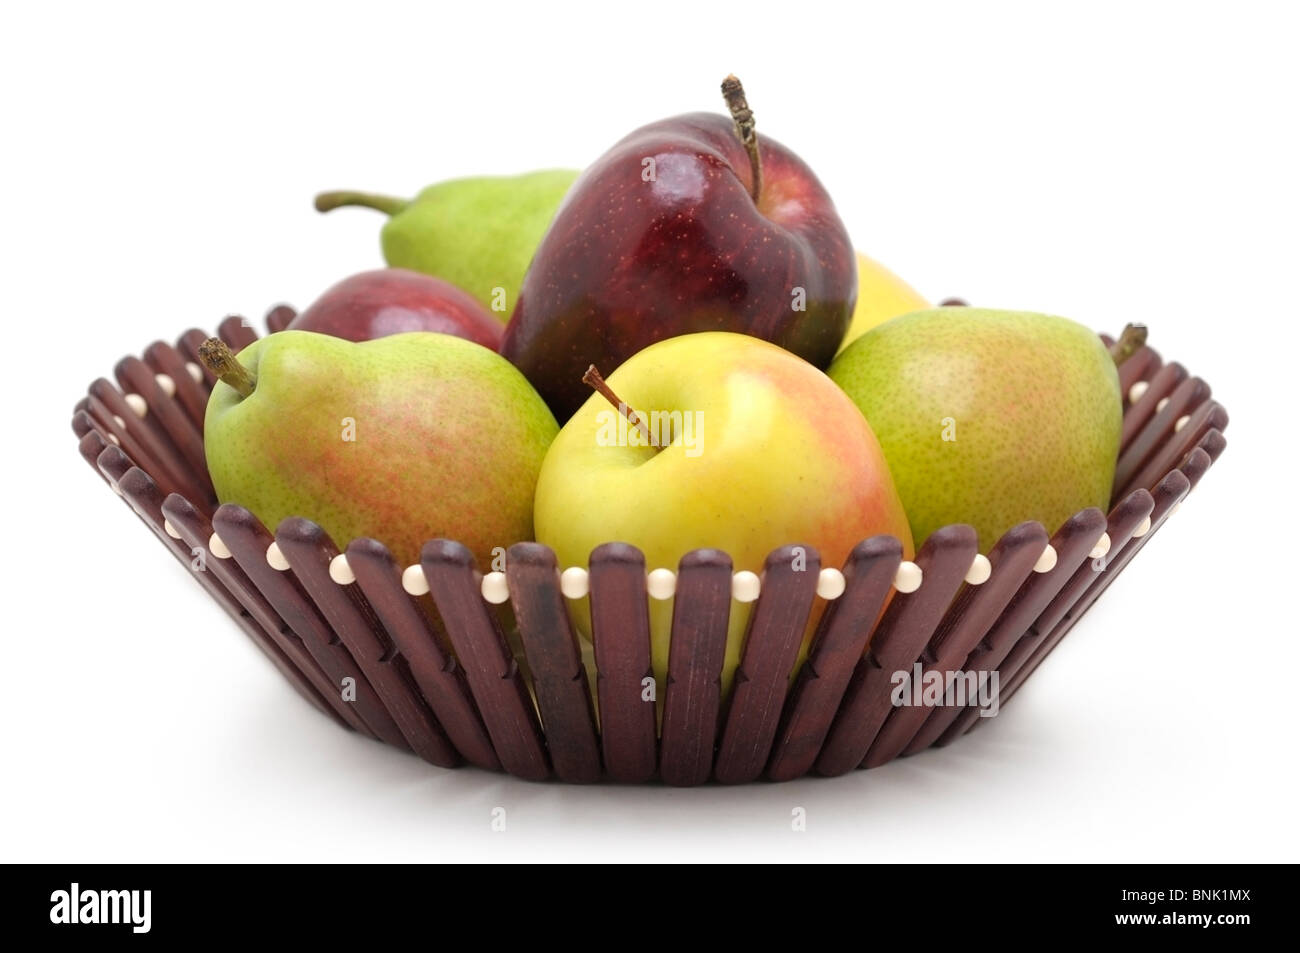 Basket of Fruits -  Apples and Pears - Stock Image